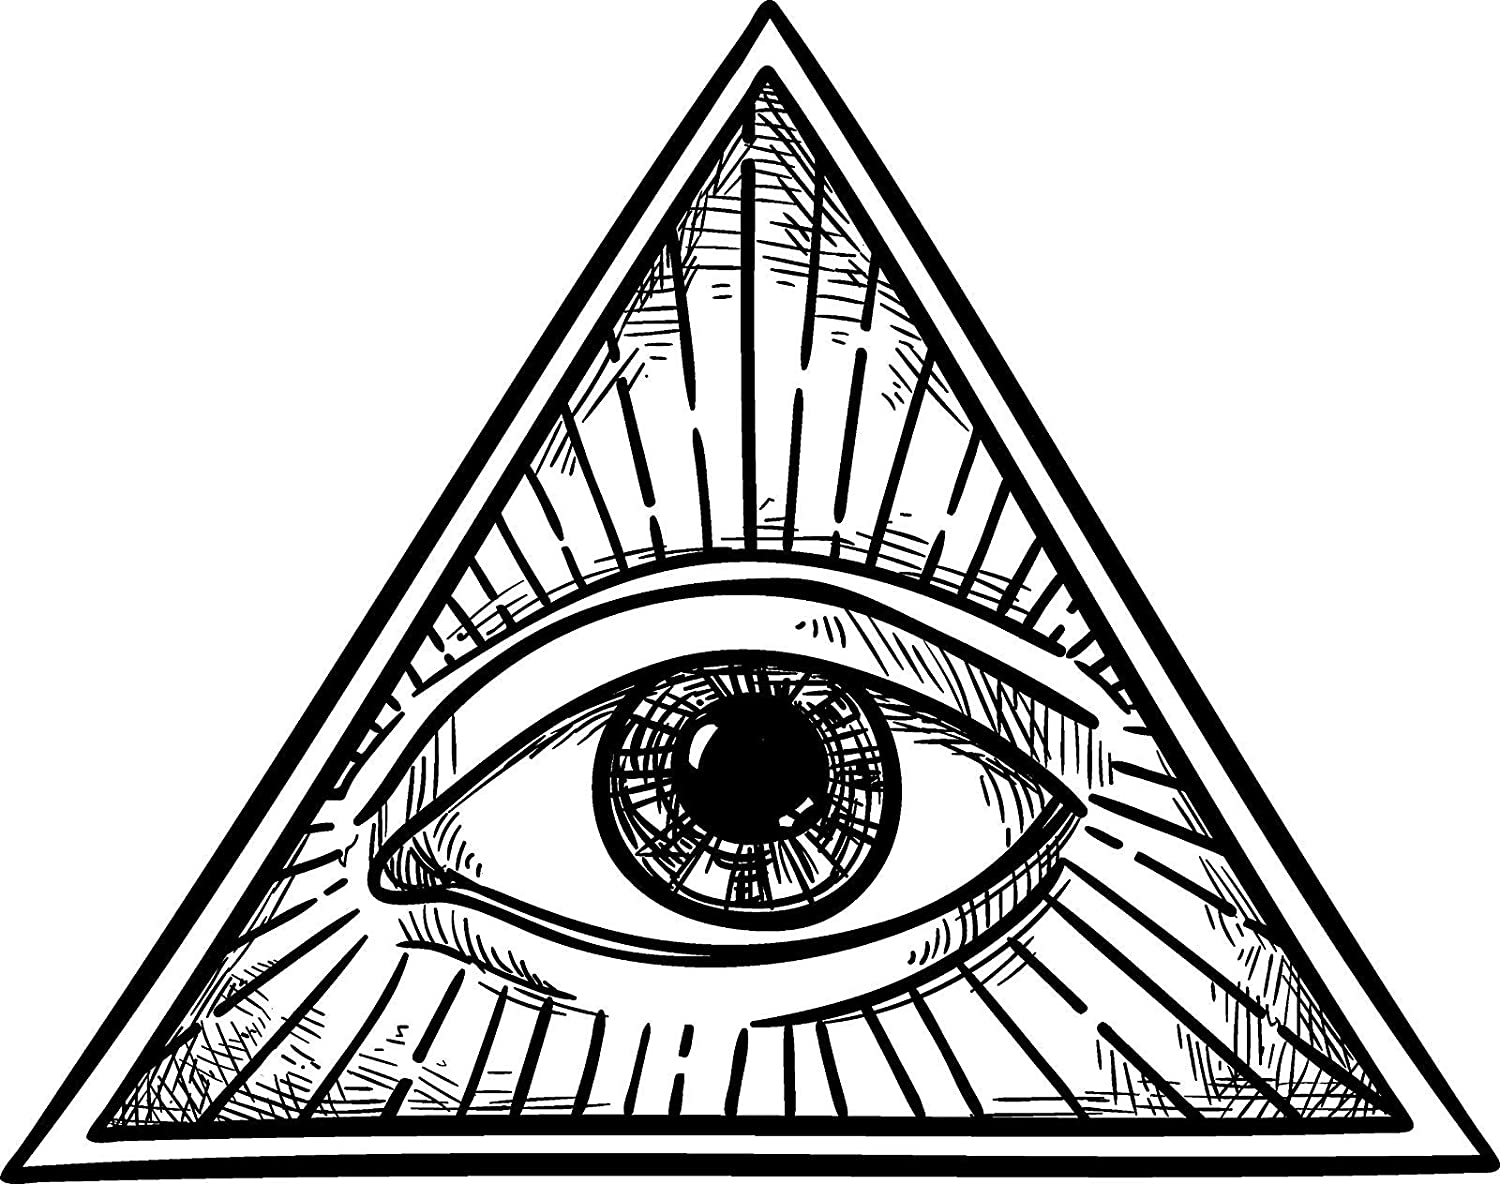 """Amazon.com: EW Designs Black and White All Seeing Eye of Providence in  Simple Pyramid Vinyl Decal Bumper Sticker (4"""" Wide): Kitchen & Dining"""